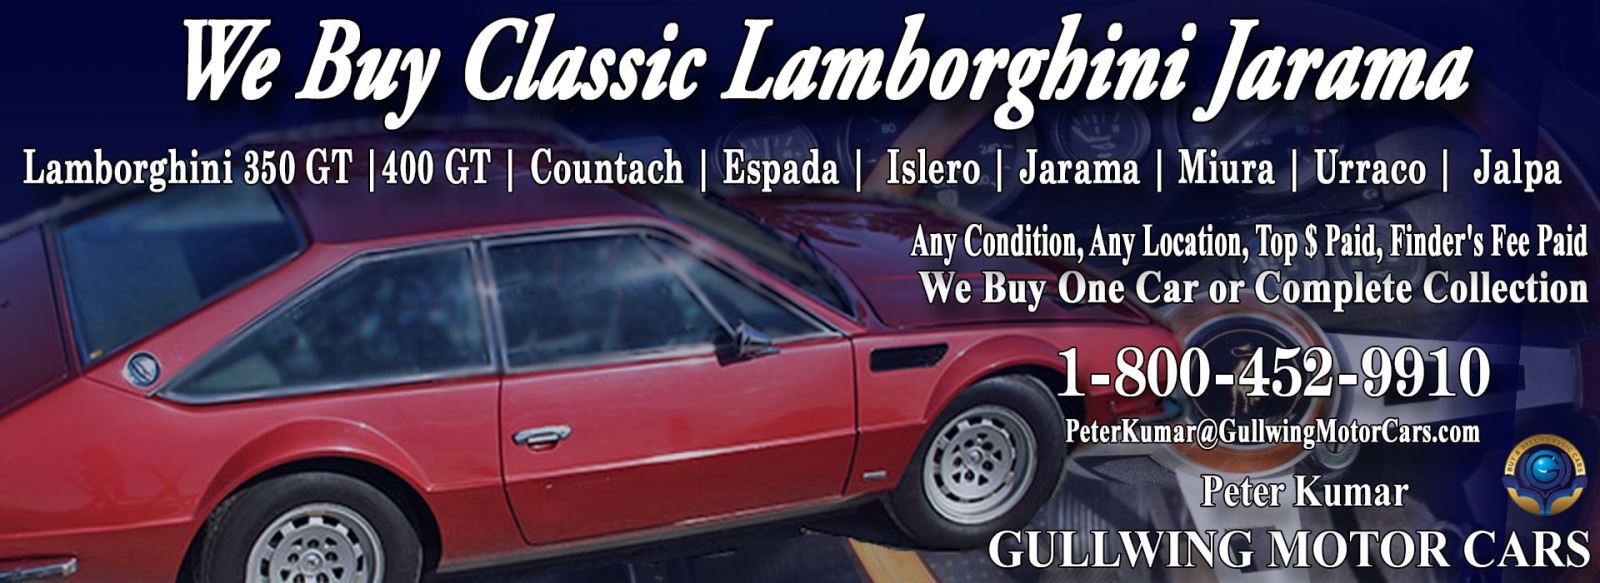 Classic Lamborghini Jarama for sale, we buy vintage Lamborghini Jarama. Call Peter Kumar. Gullwing Motor